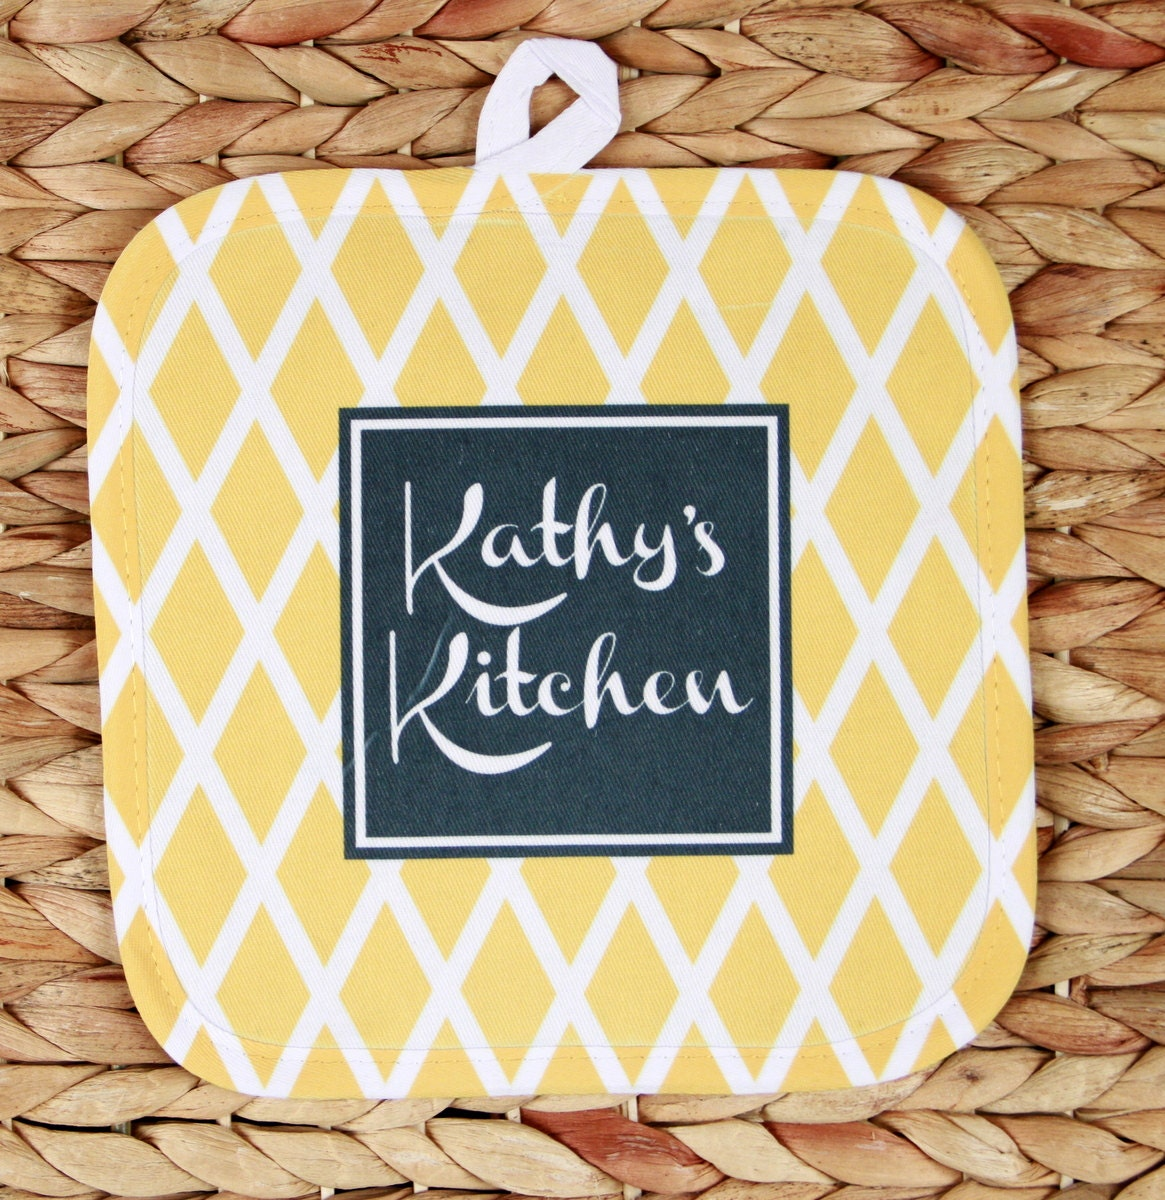 Cooking Gifts For Women Personalized Oven Mitt Pot Holder